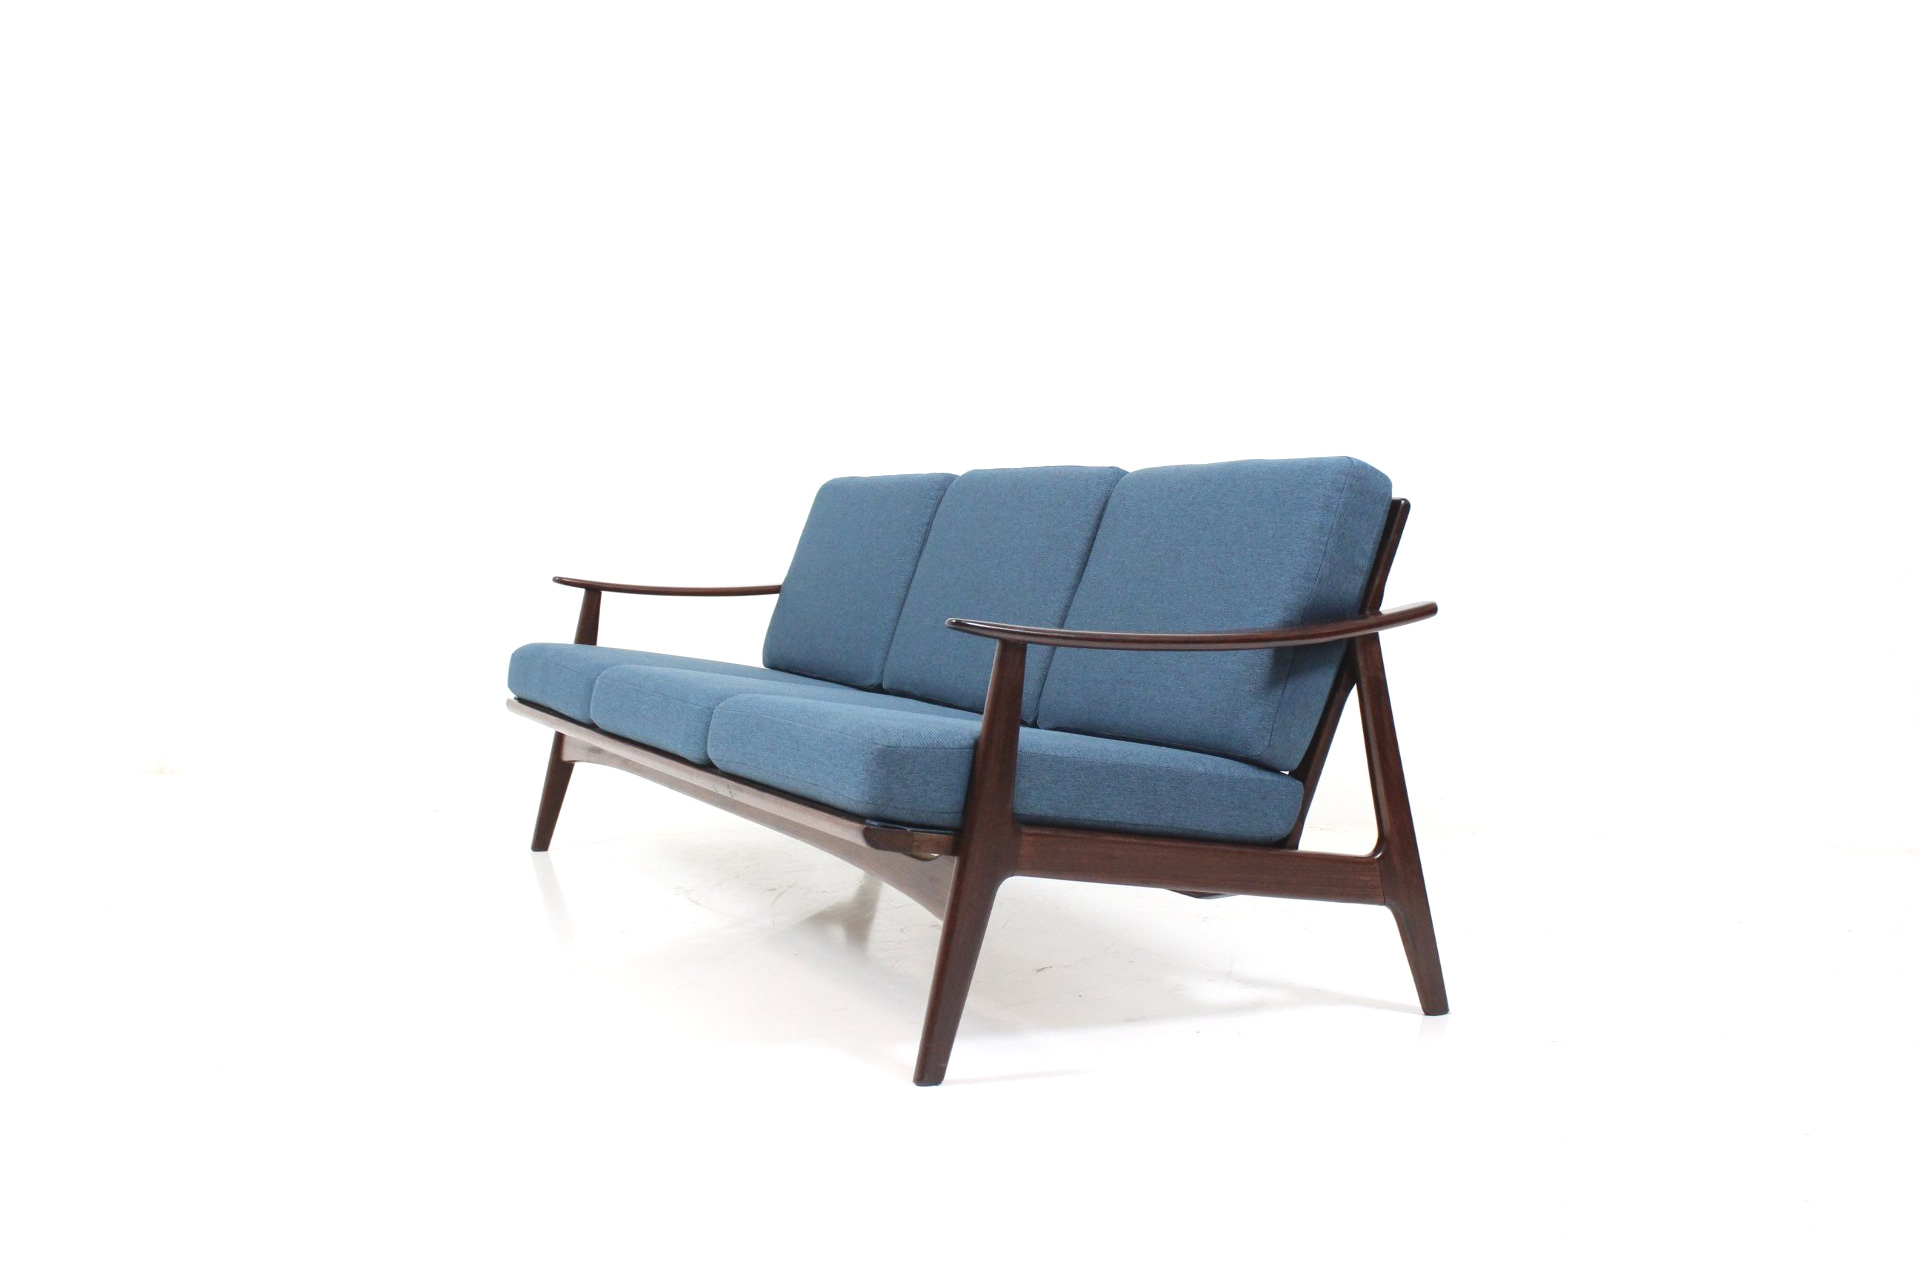 three seater cushion sofa in teak for knoll antimott. Black Bedroom Furniture Sets. Home Design Ideas